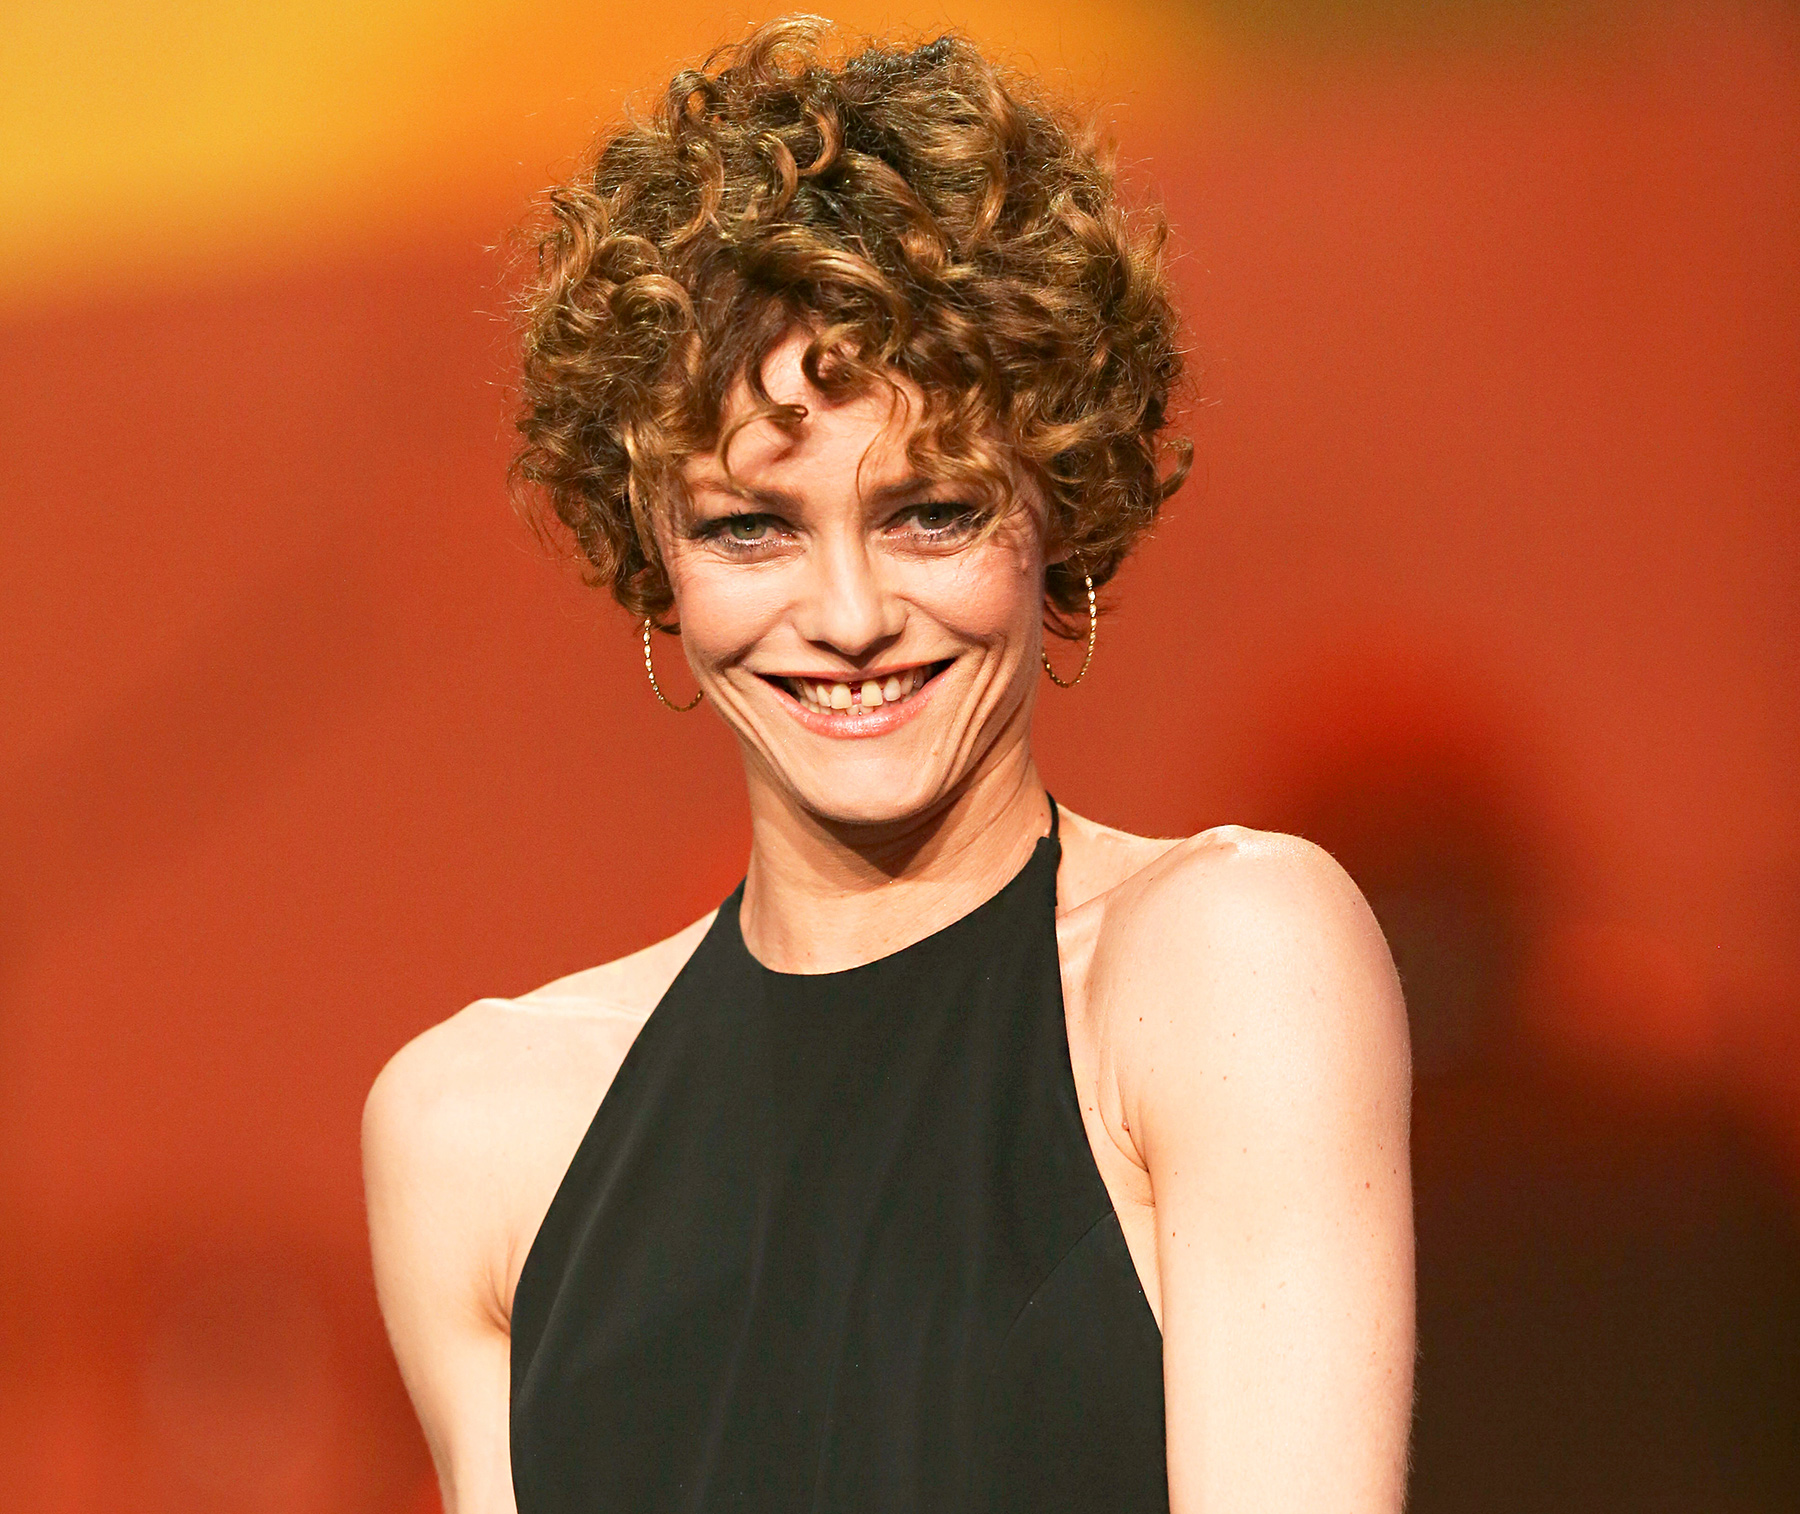 Vanessa Paradis HD Wallpapers for desktop download Vanessa Paradis